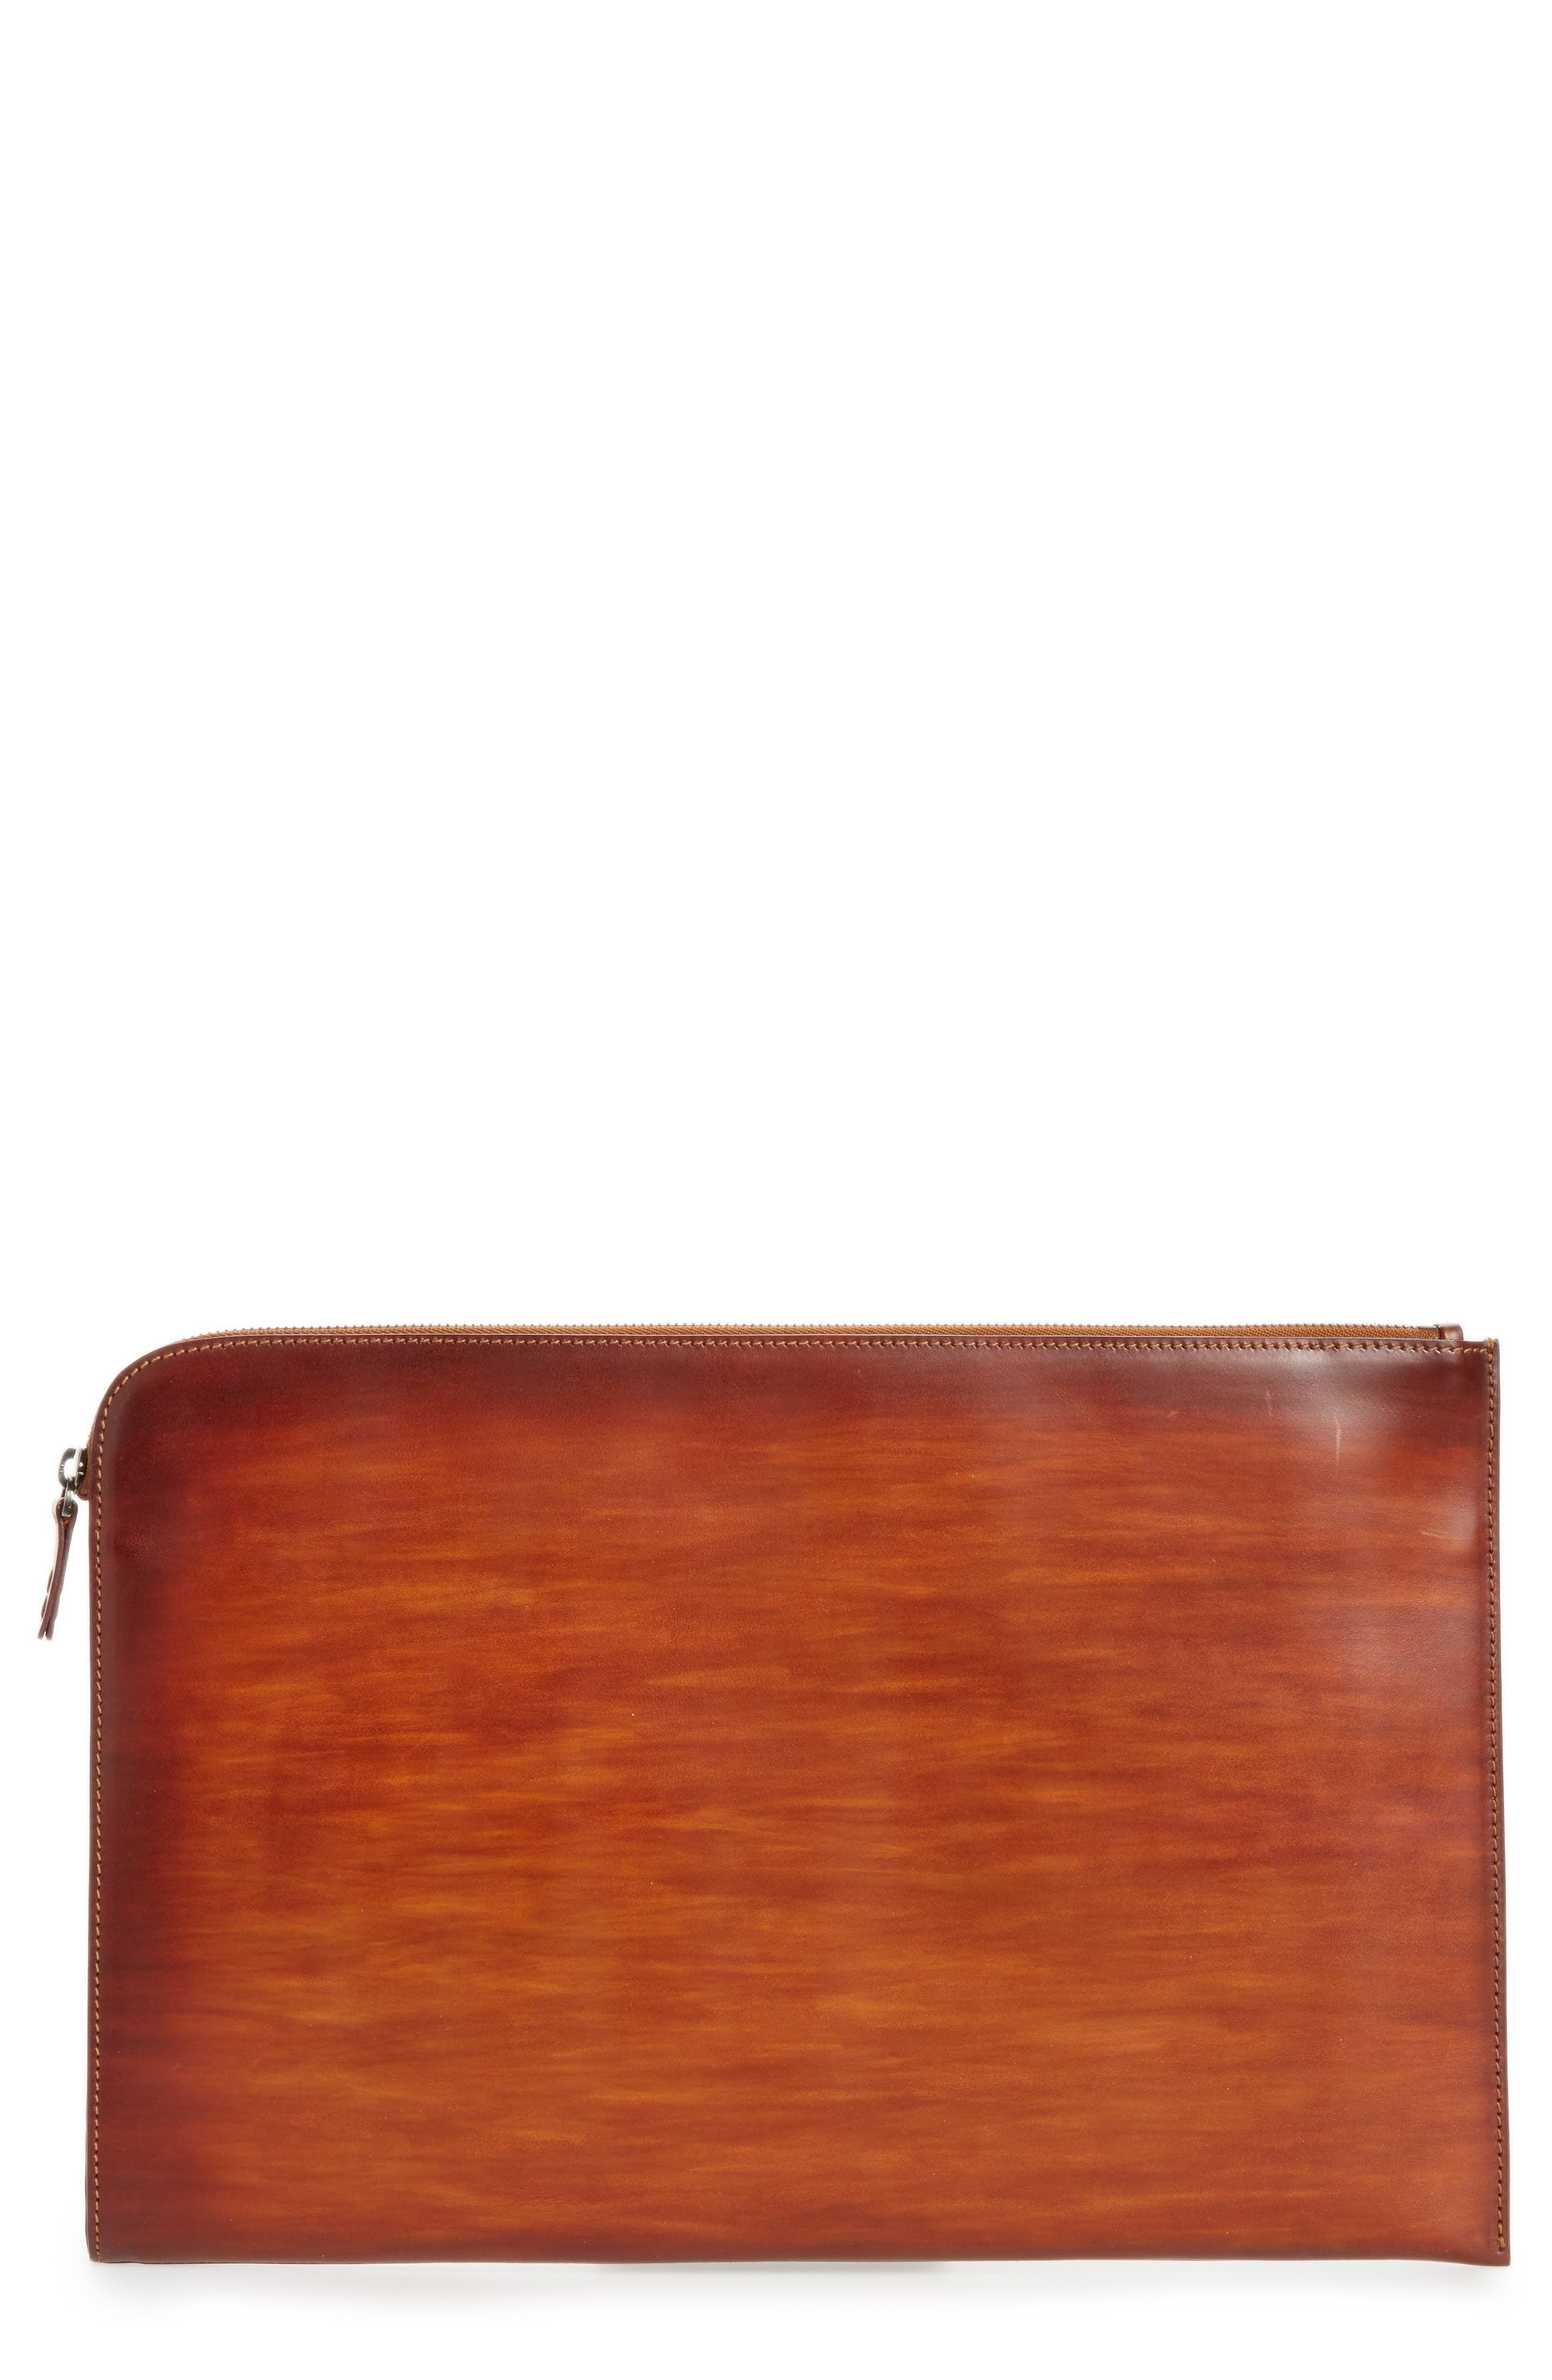 Leather Portfolio,                             Main thumbnail 1, color,                             Mid Brown